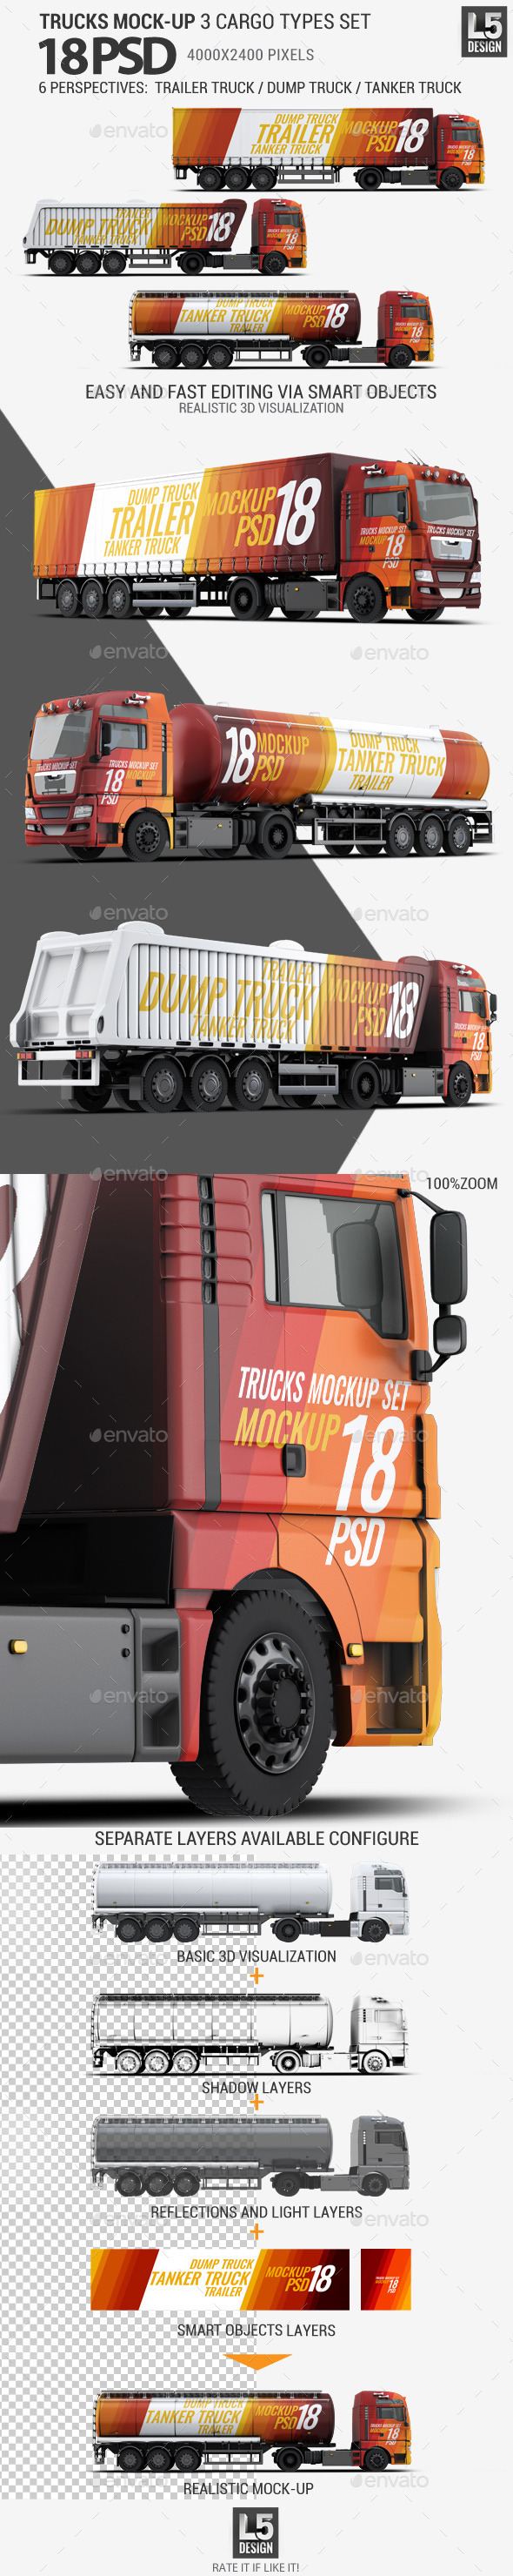 Trucks Mock-up 3 Cargo Types Set